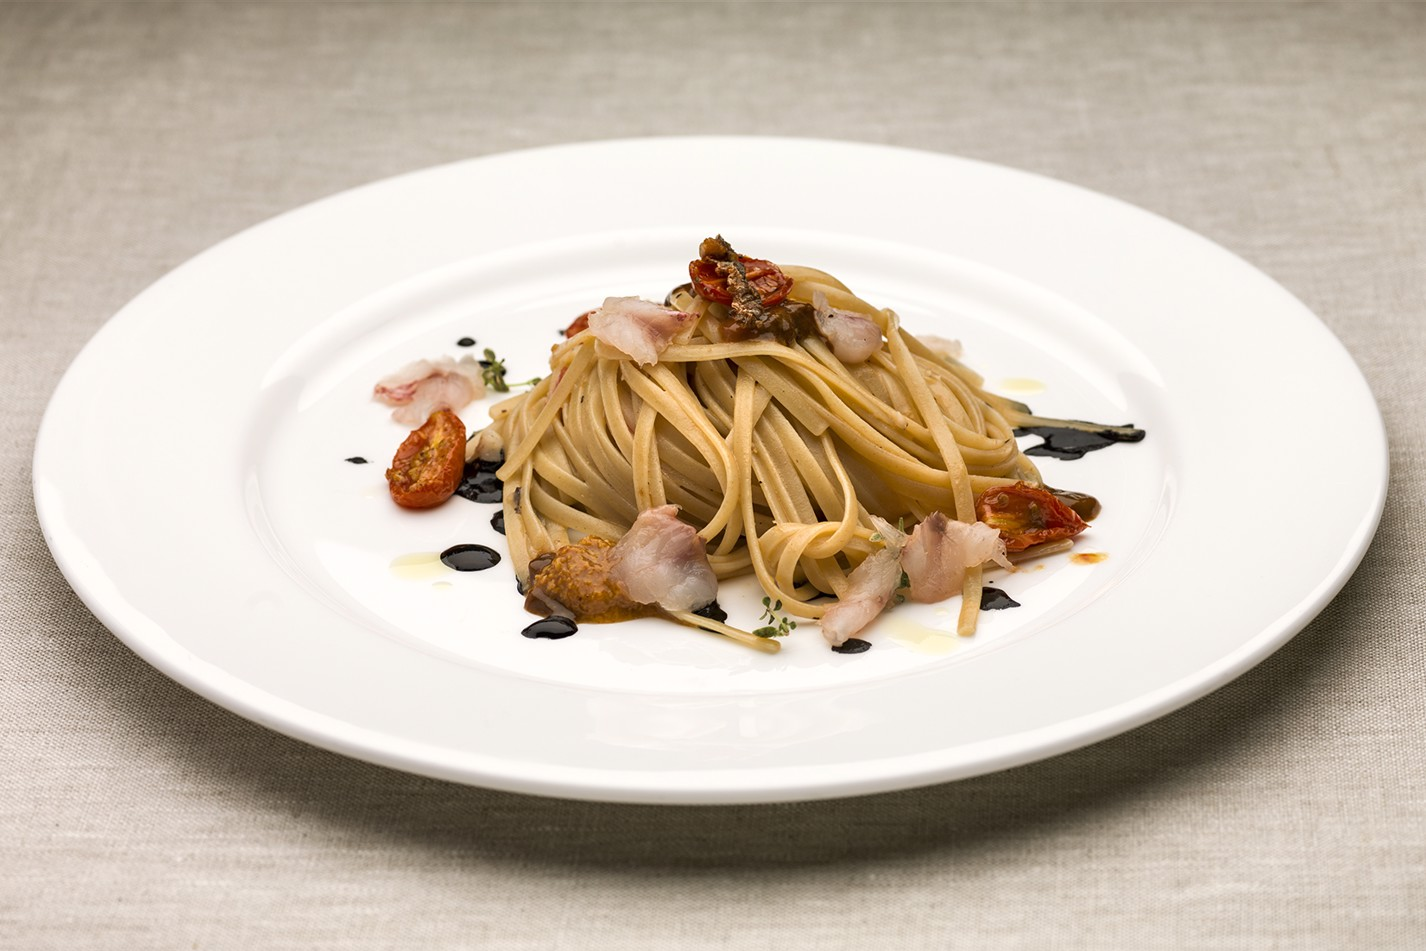 Luca Torricelli, Switzerland – Bavette with red mullet, sea urchins and squid ink